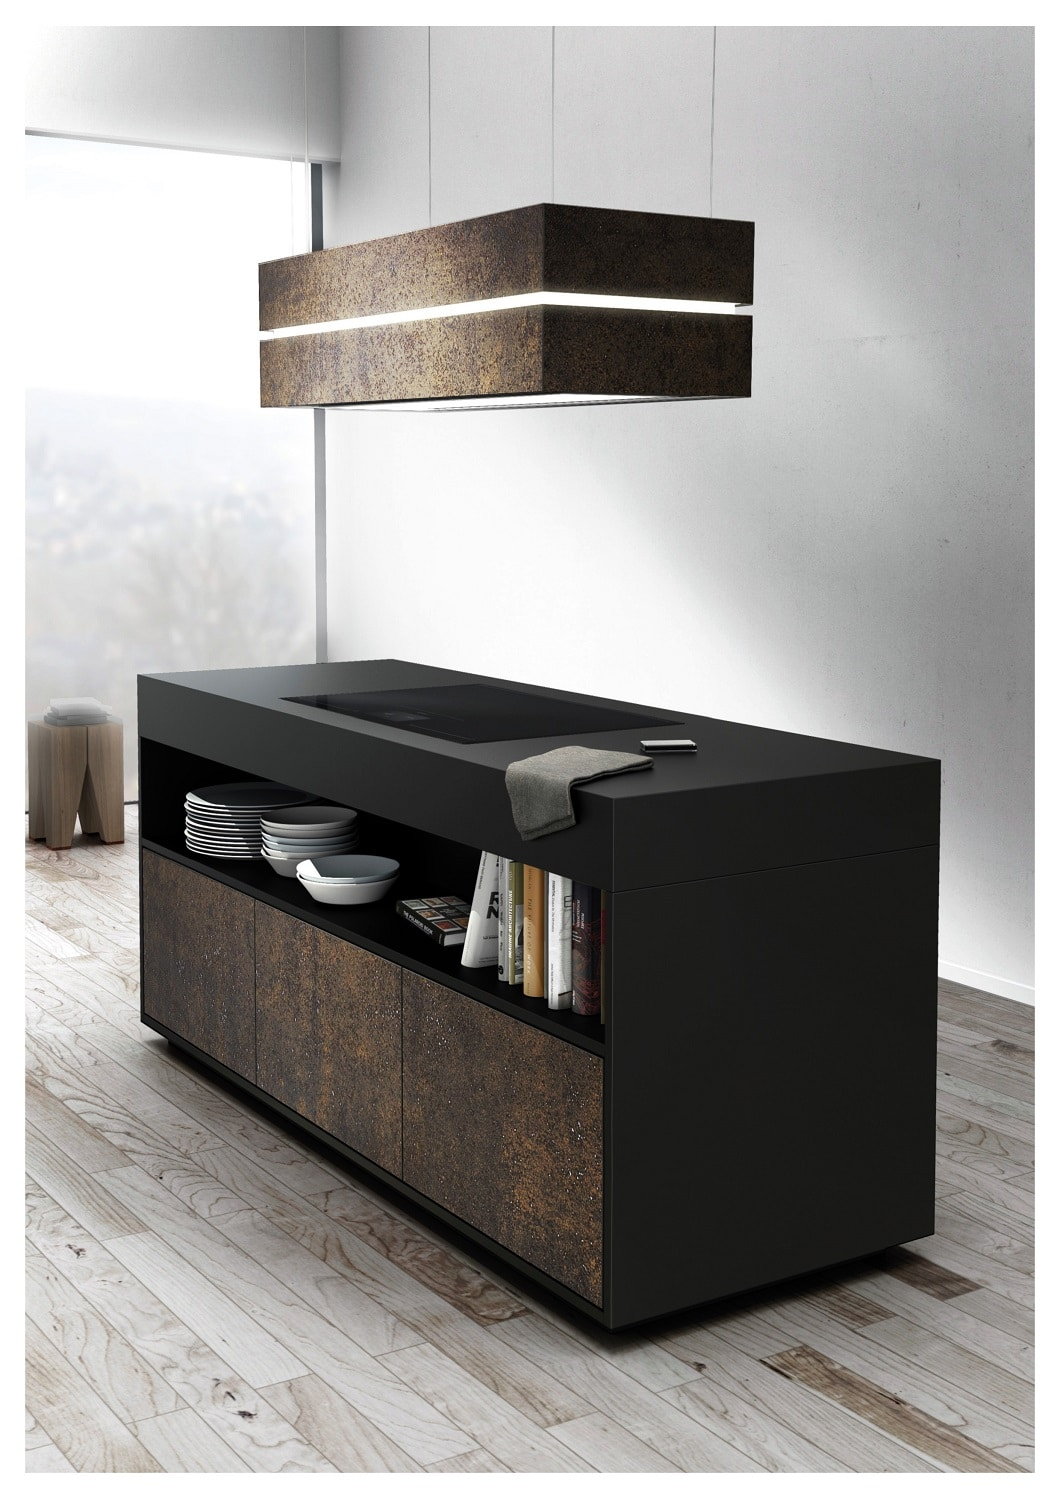 skyline edge von berbel dunstabzug mit sound und stil k chendesignmagazin lassen sie sich. Black Bedroom Furniture Sets. Home Design Ideas